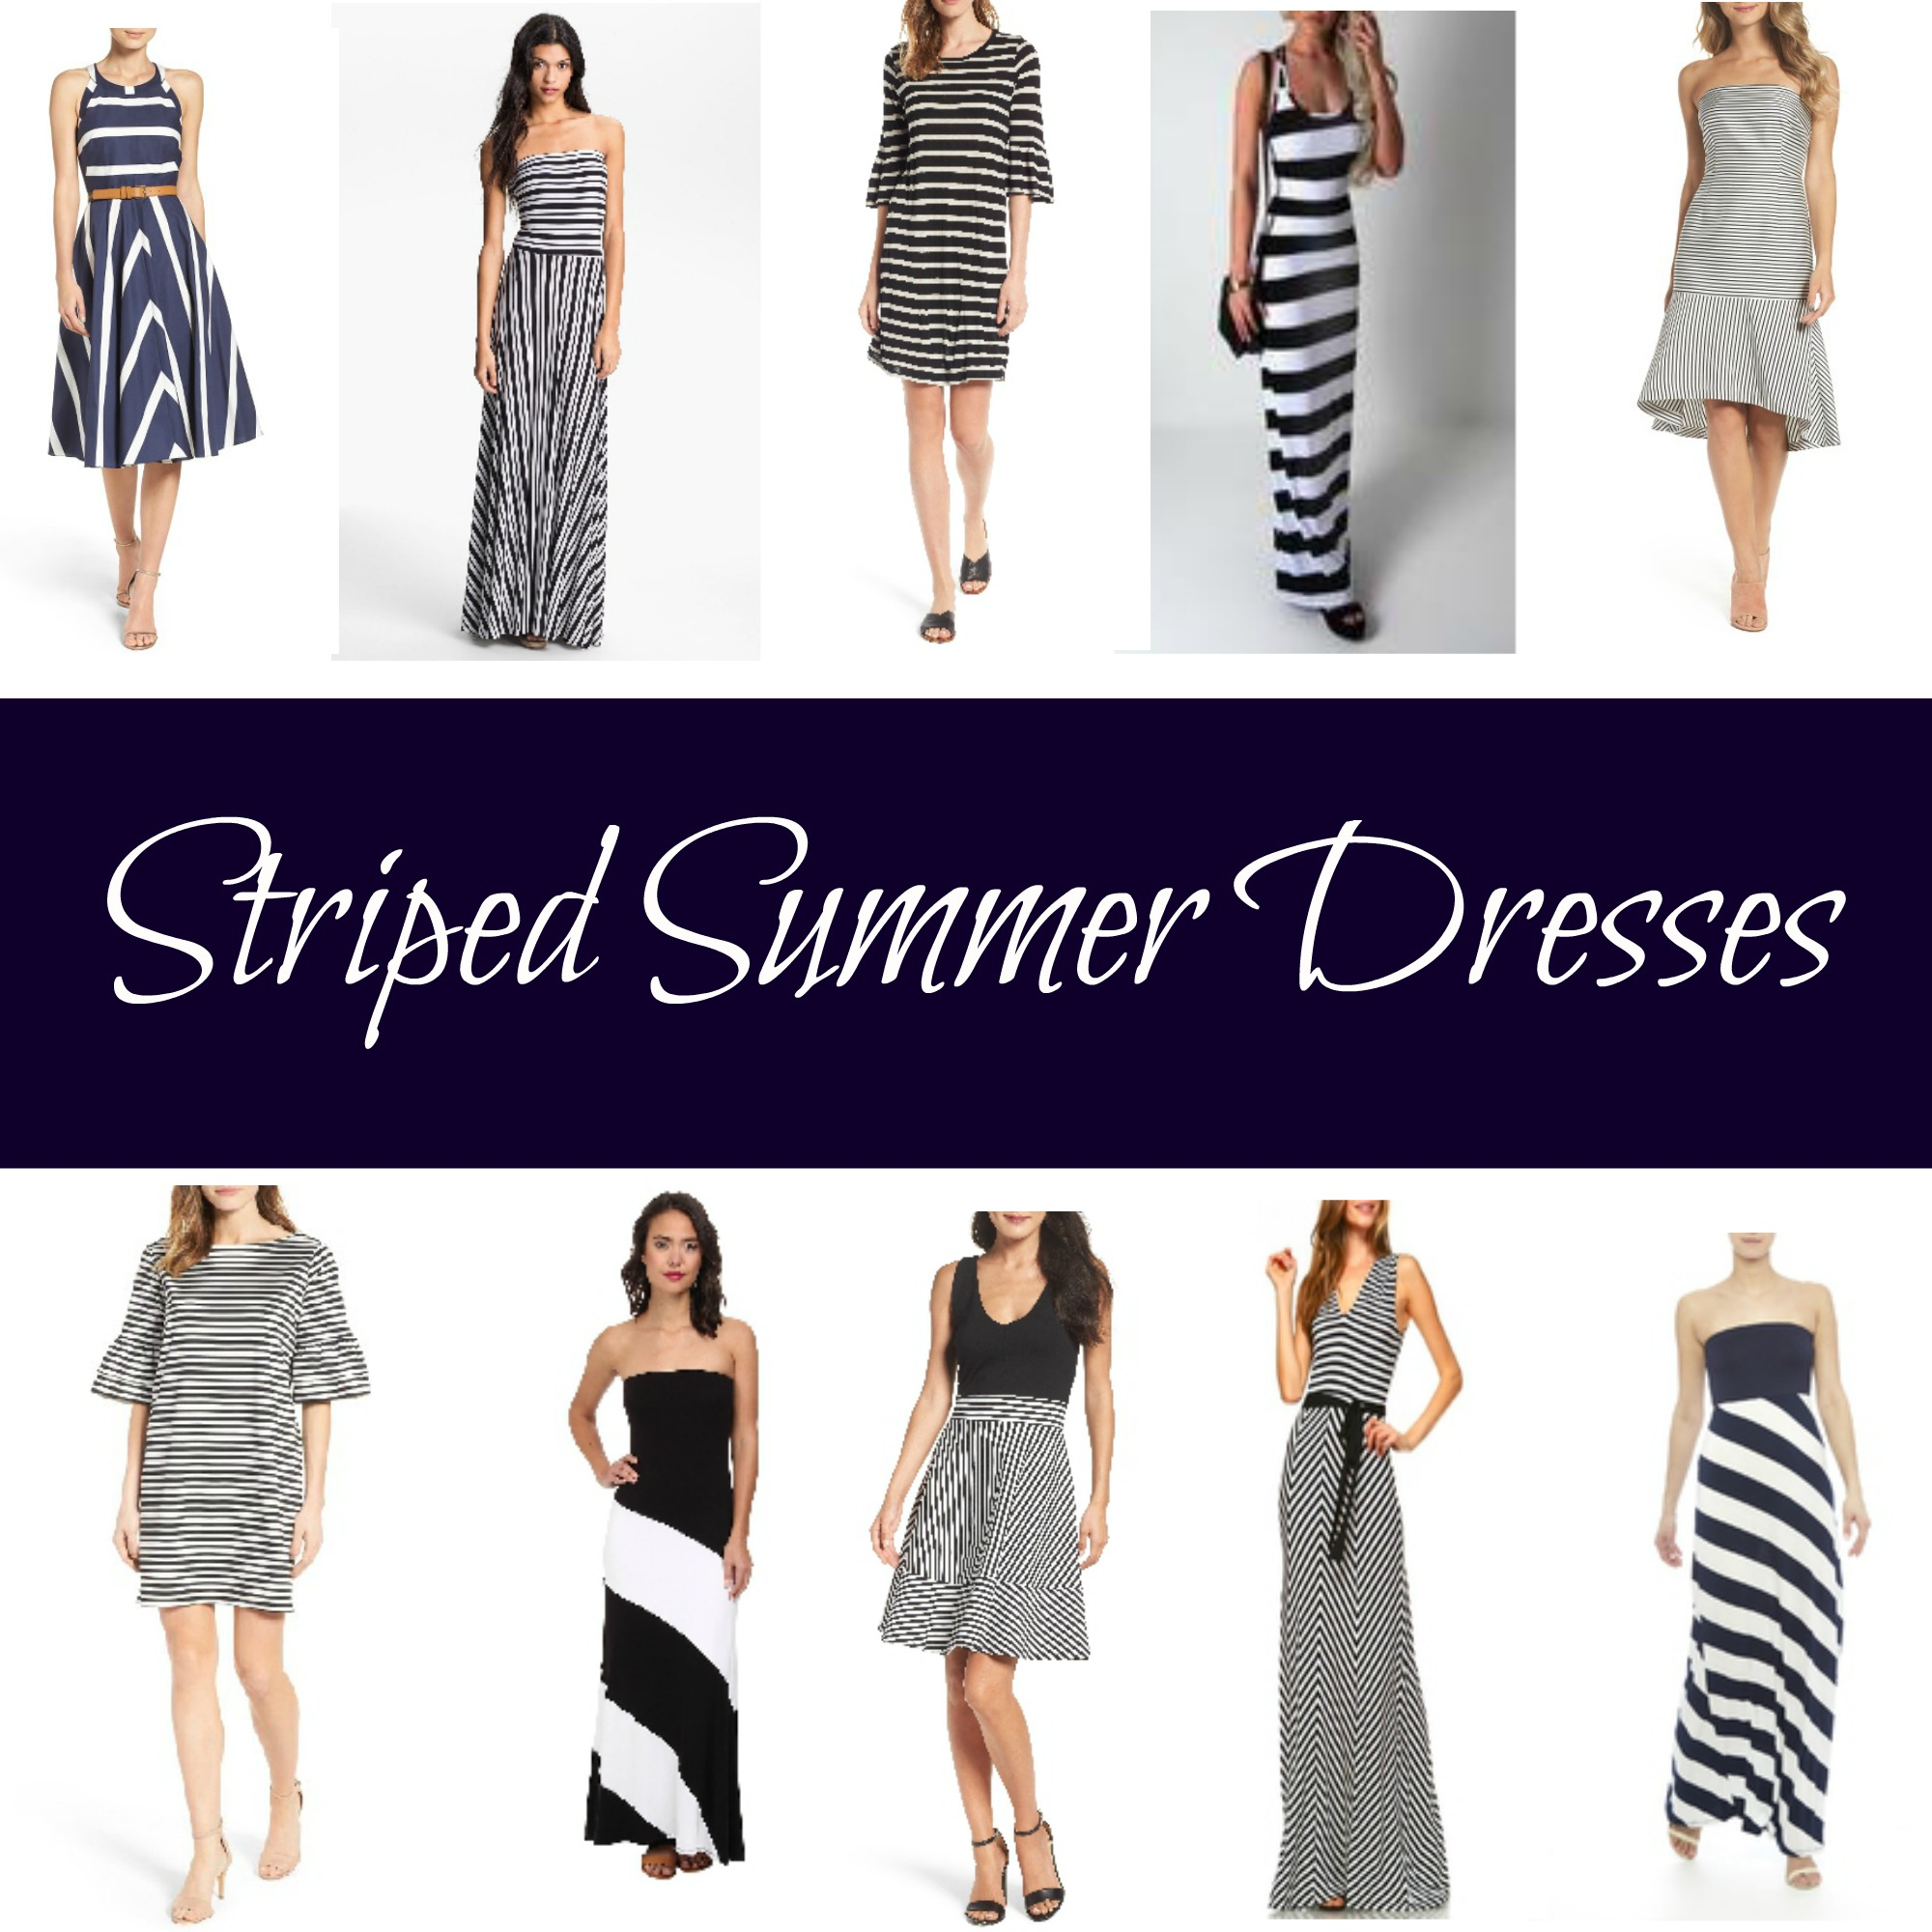 Striped Summer Dresses